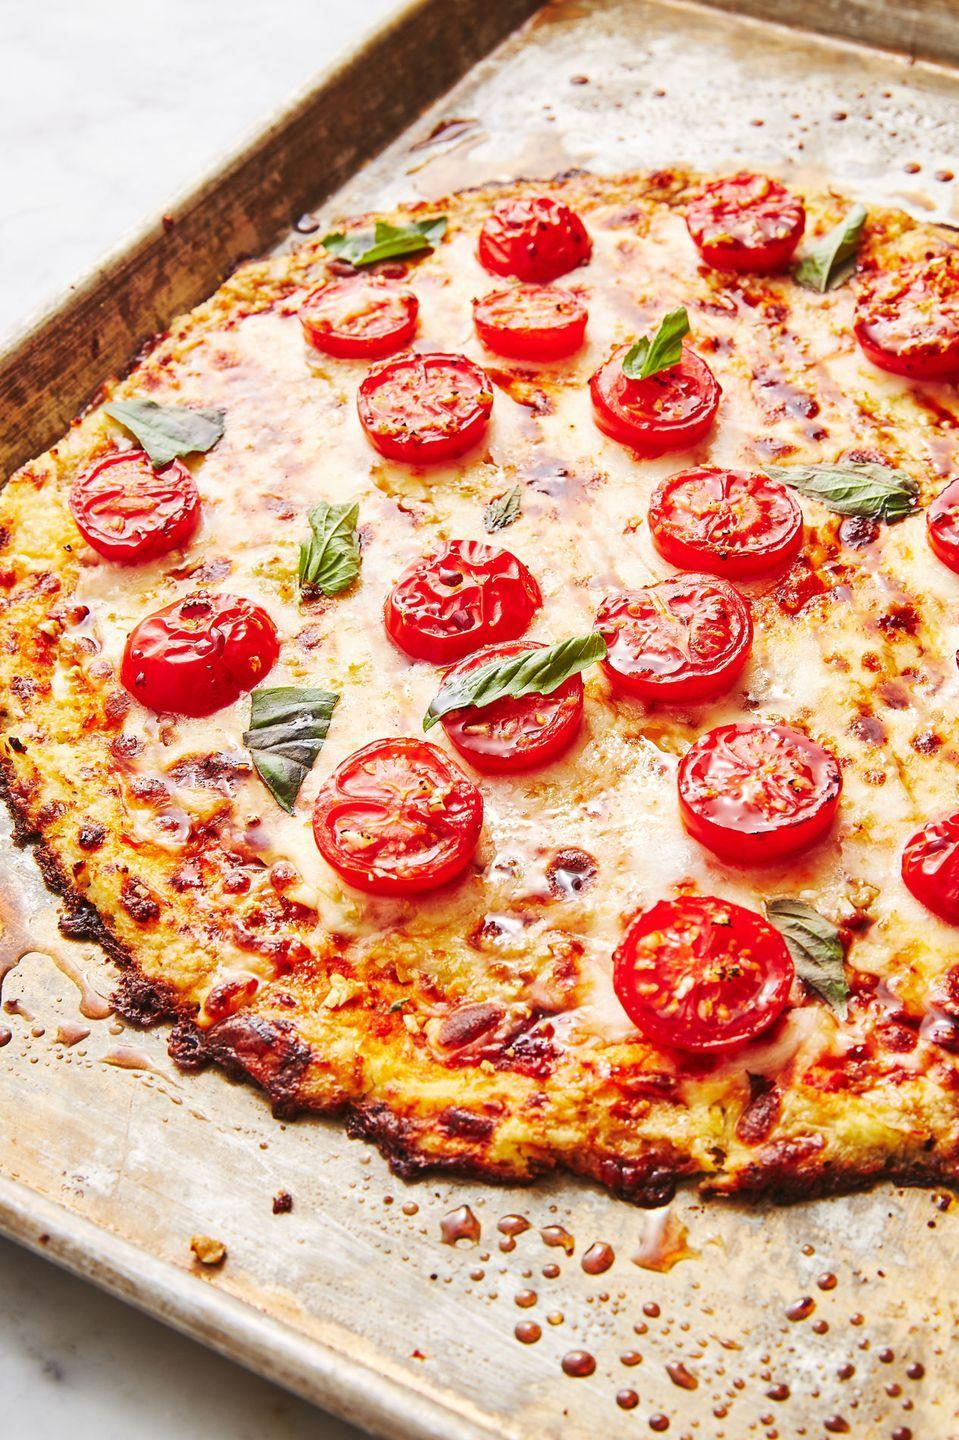 "<p>You have a pizza my heart. </p><p>Get the recipe from <a href=""https://www.delish.com/cooking/recipe-ideas/recipes/a47565/cauliflower-crust-pizza-recipe/"" rel=""nofollow noopener"" target=""_blank"" data-ylk=""slk:Delish"" class=""link rapid-noclick-resp"">Delish</a>. </p>"